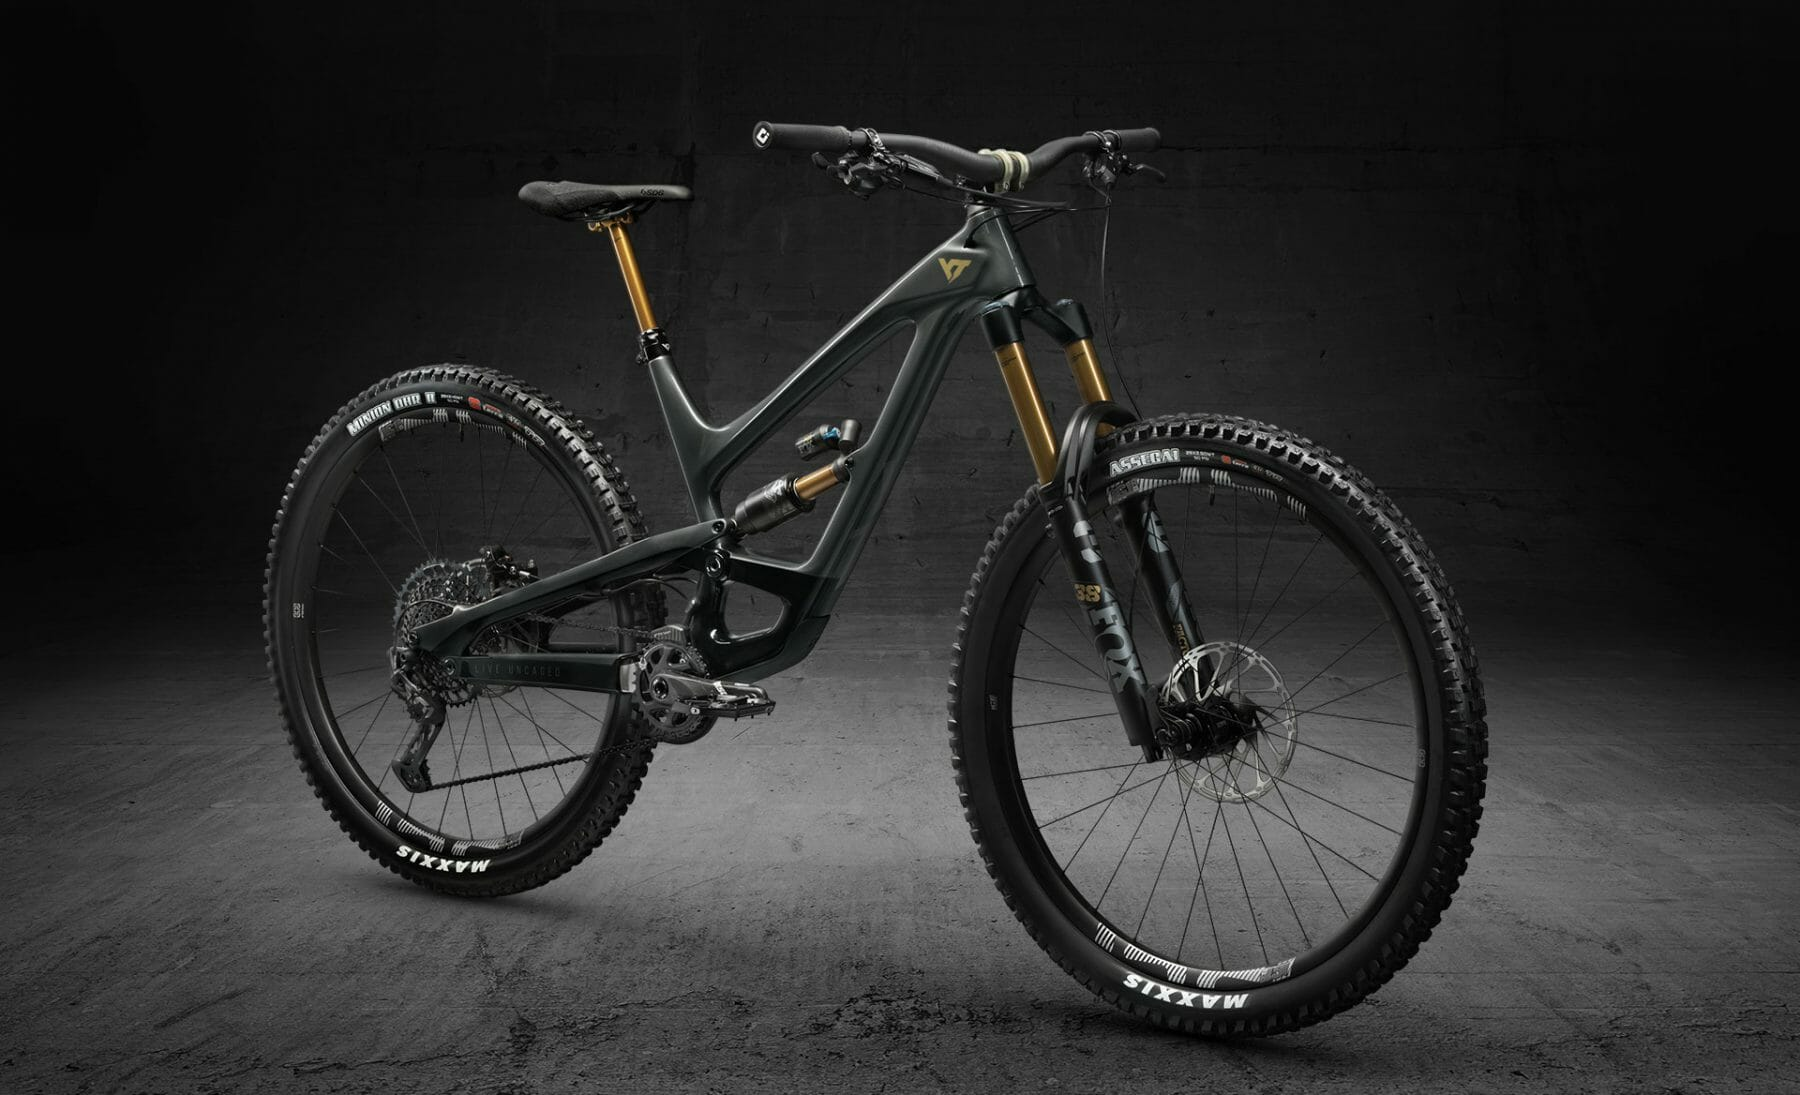 YT Industries CAPRA & DECOY Elite: Ready for take-off